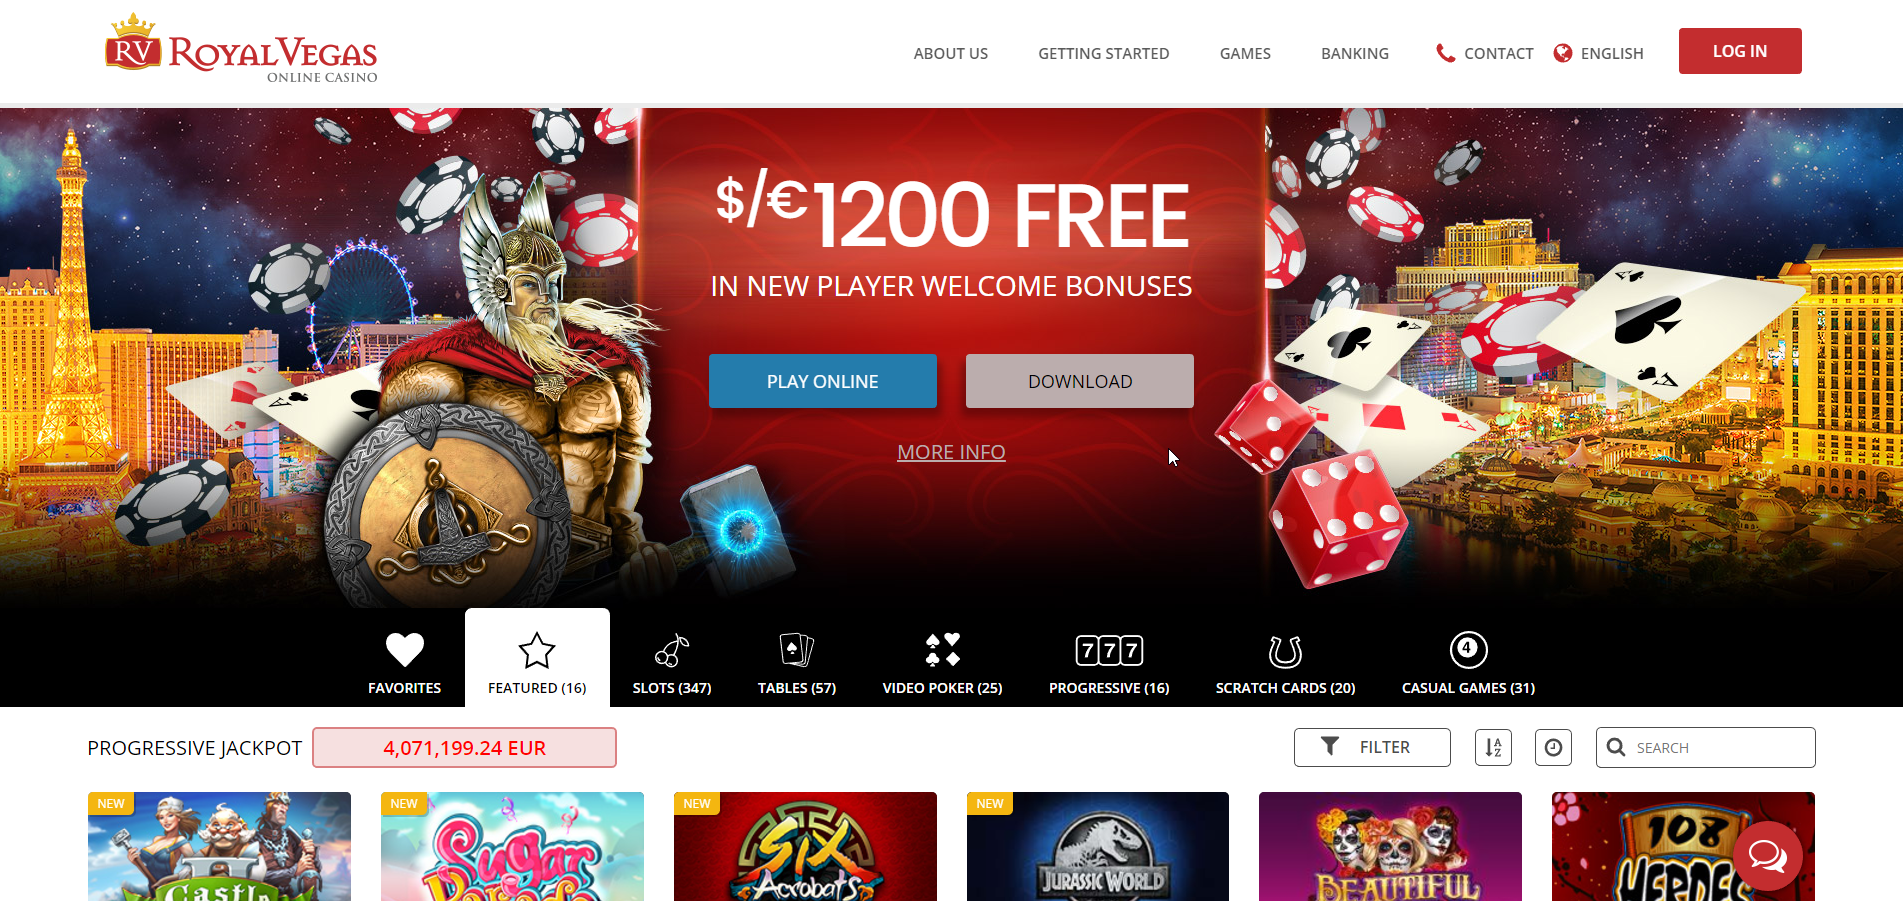 Vegas Casino Online Online Review With Promotions & Bonuses